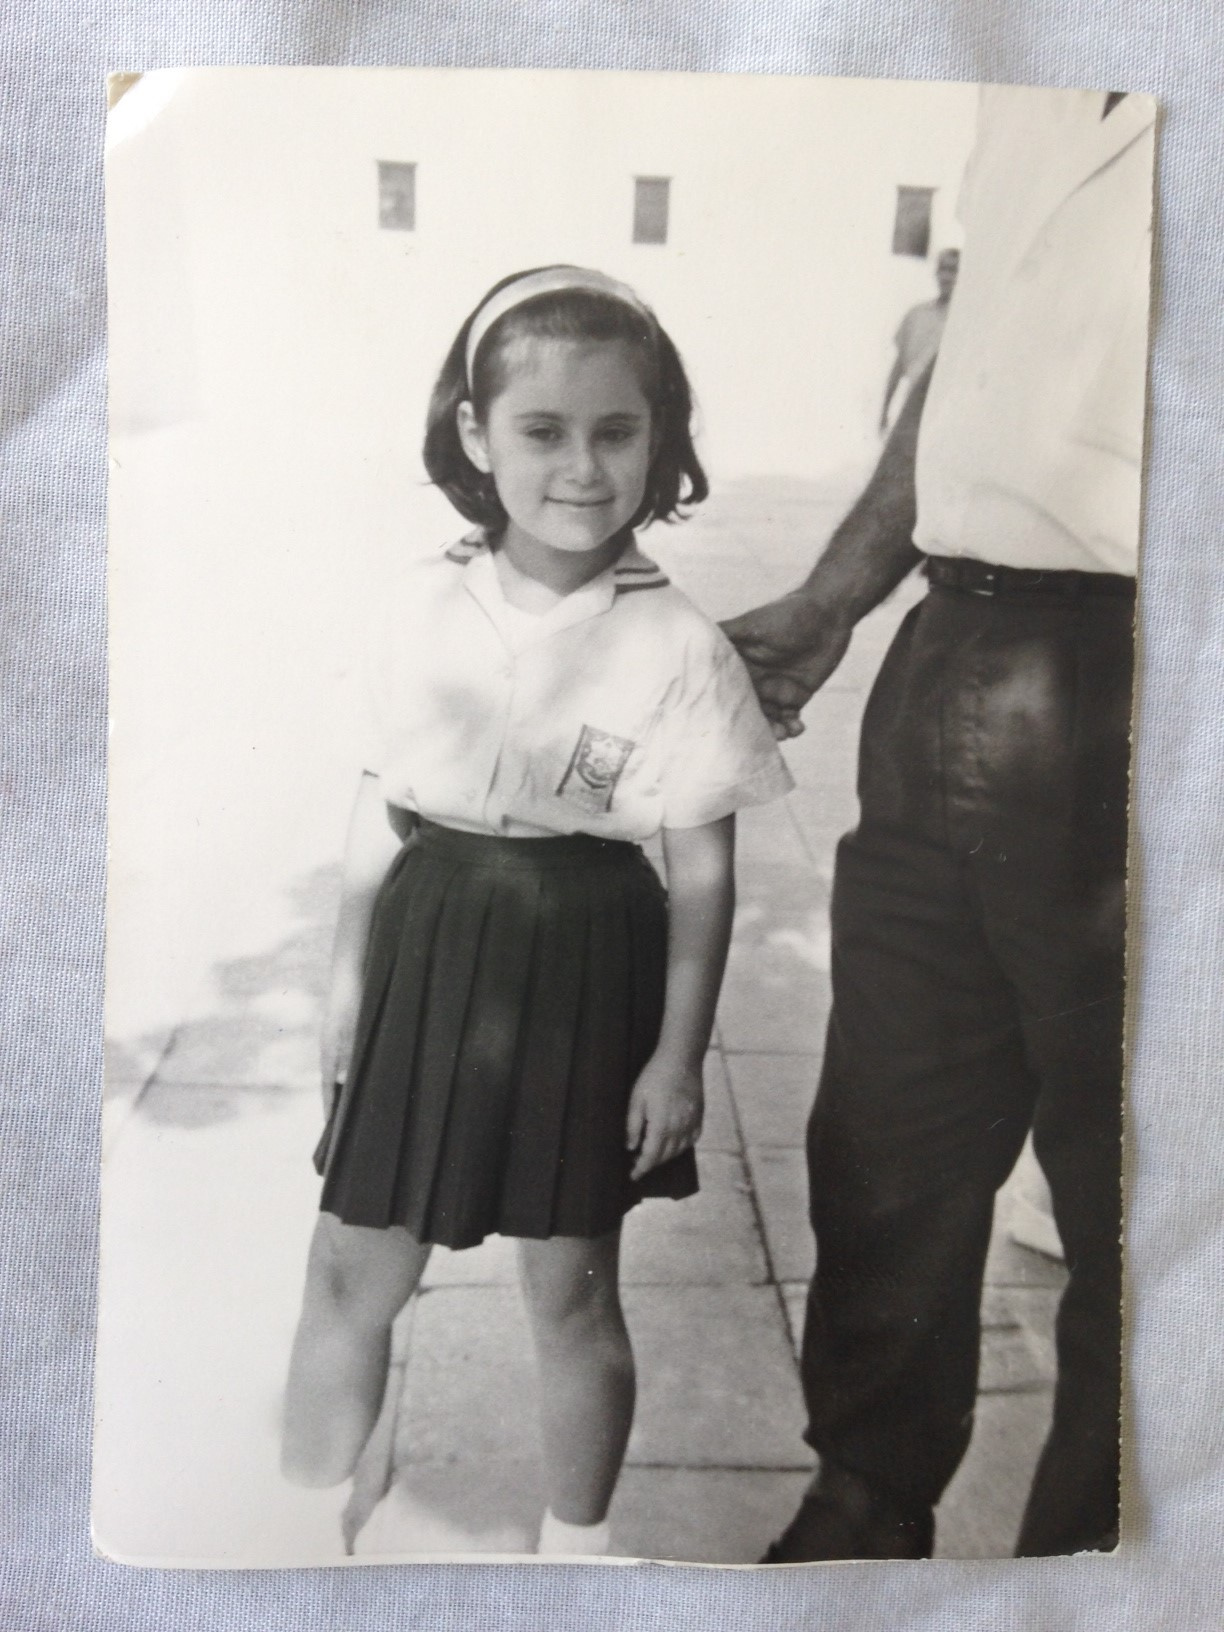 At 6 years old